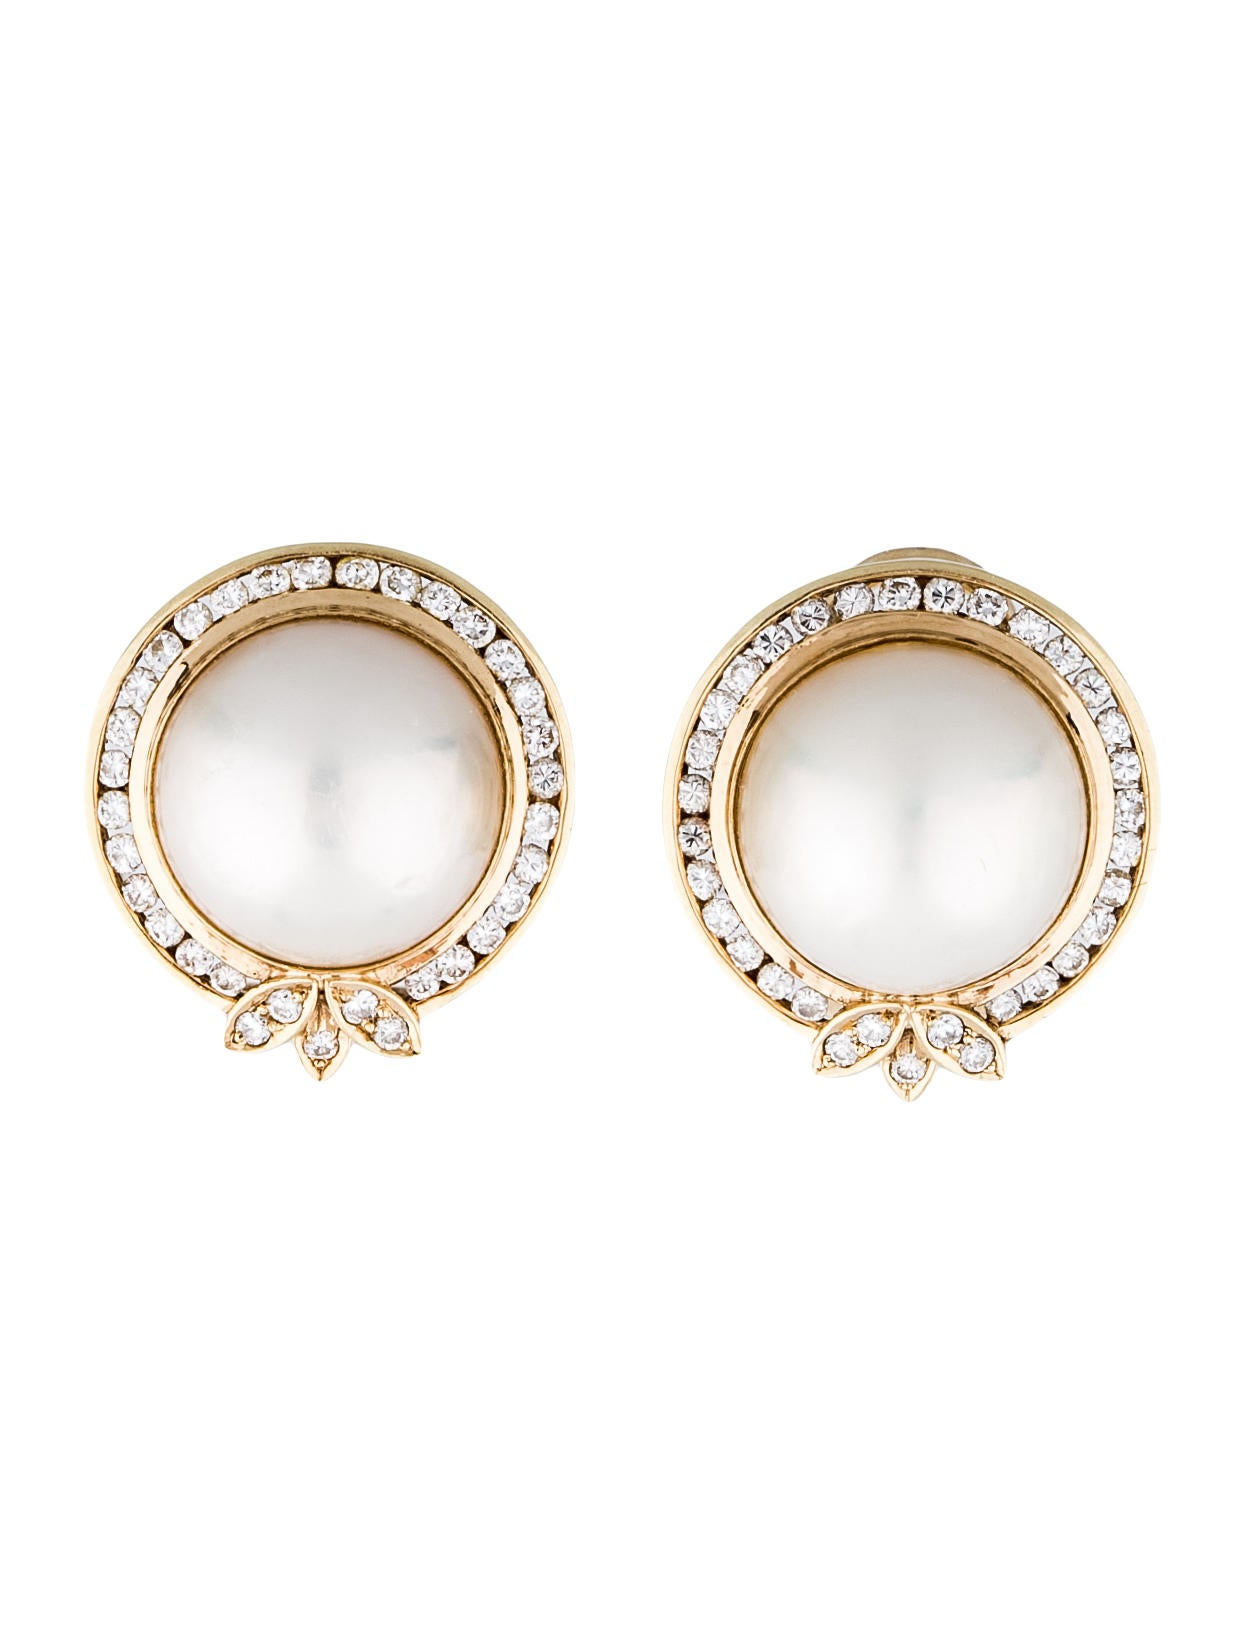 14k gold mabe pearl and earclips jewelry